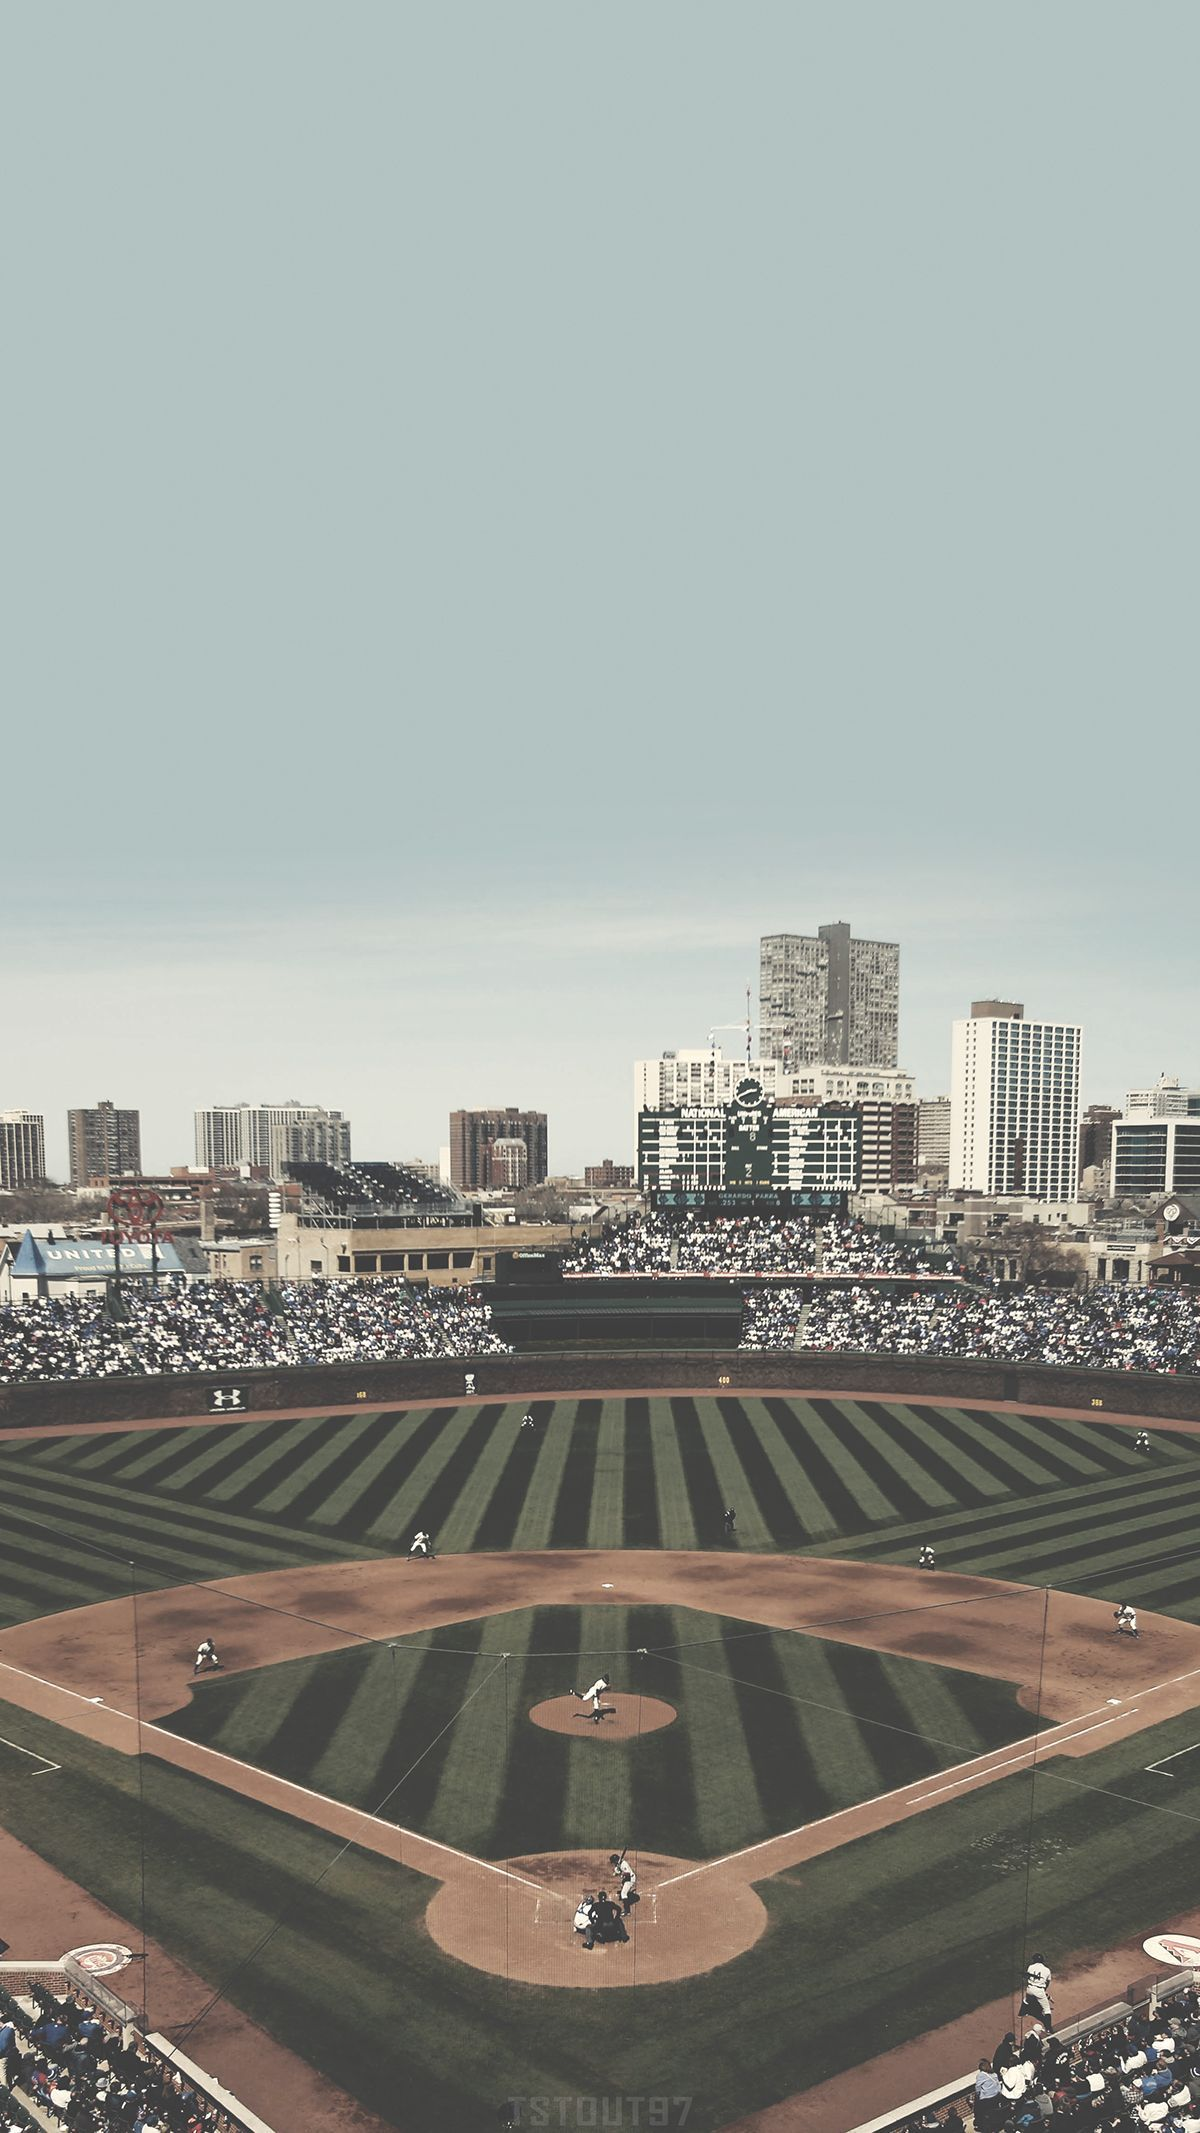 Chicago Cubs Wrigley Field Mobile Wallpaper In 2020 Chicago Cubs Wallpaper Cubs Wallpaper Wrigley Field